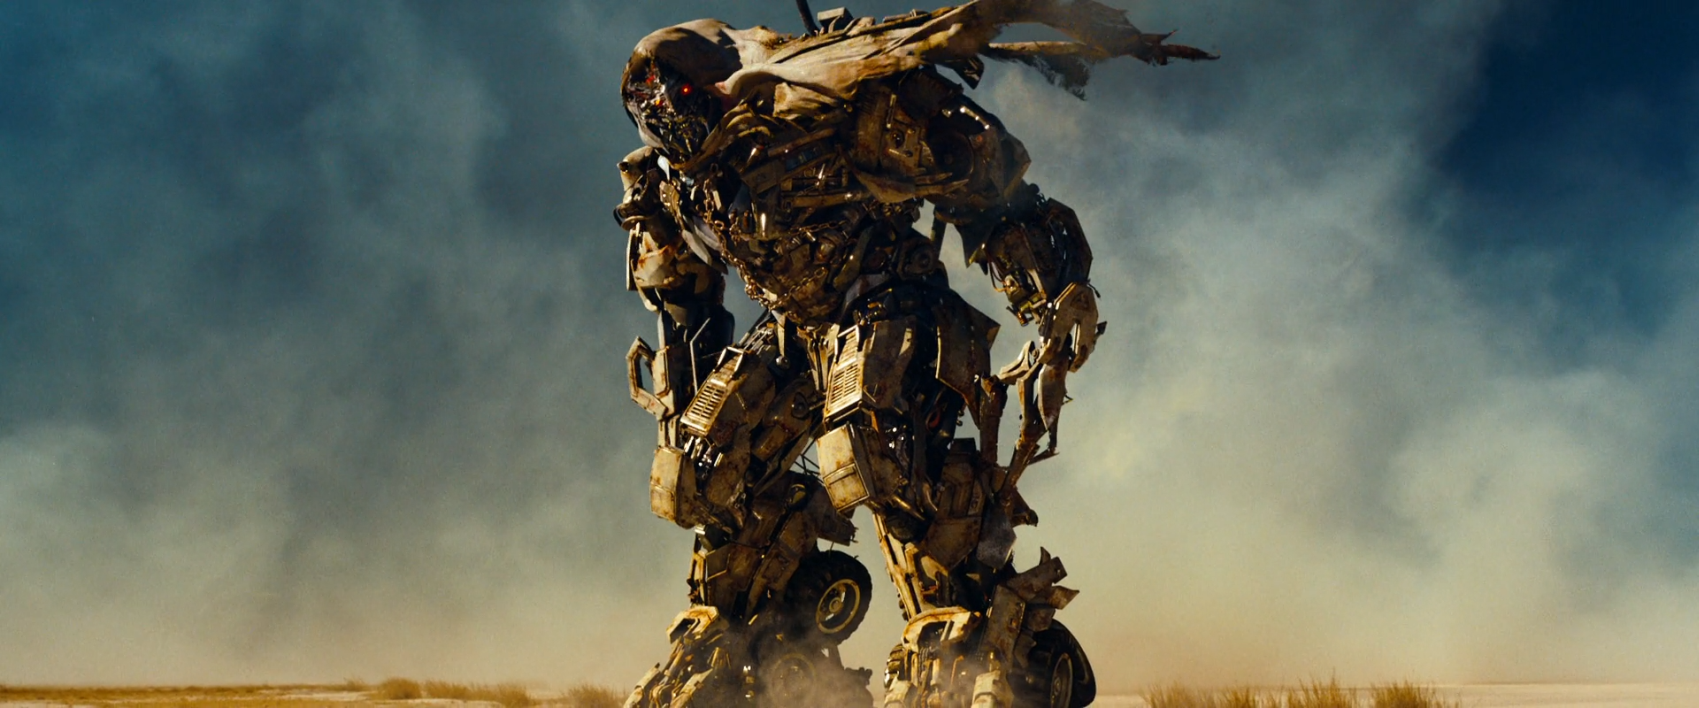 Image result for transformers movie megatron